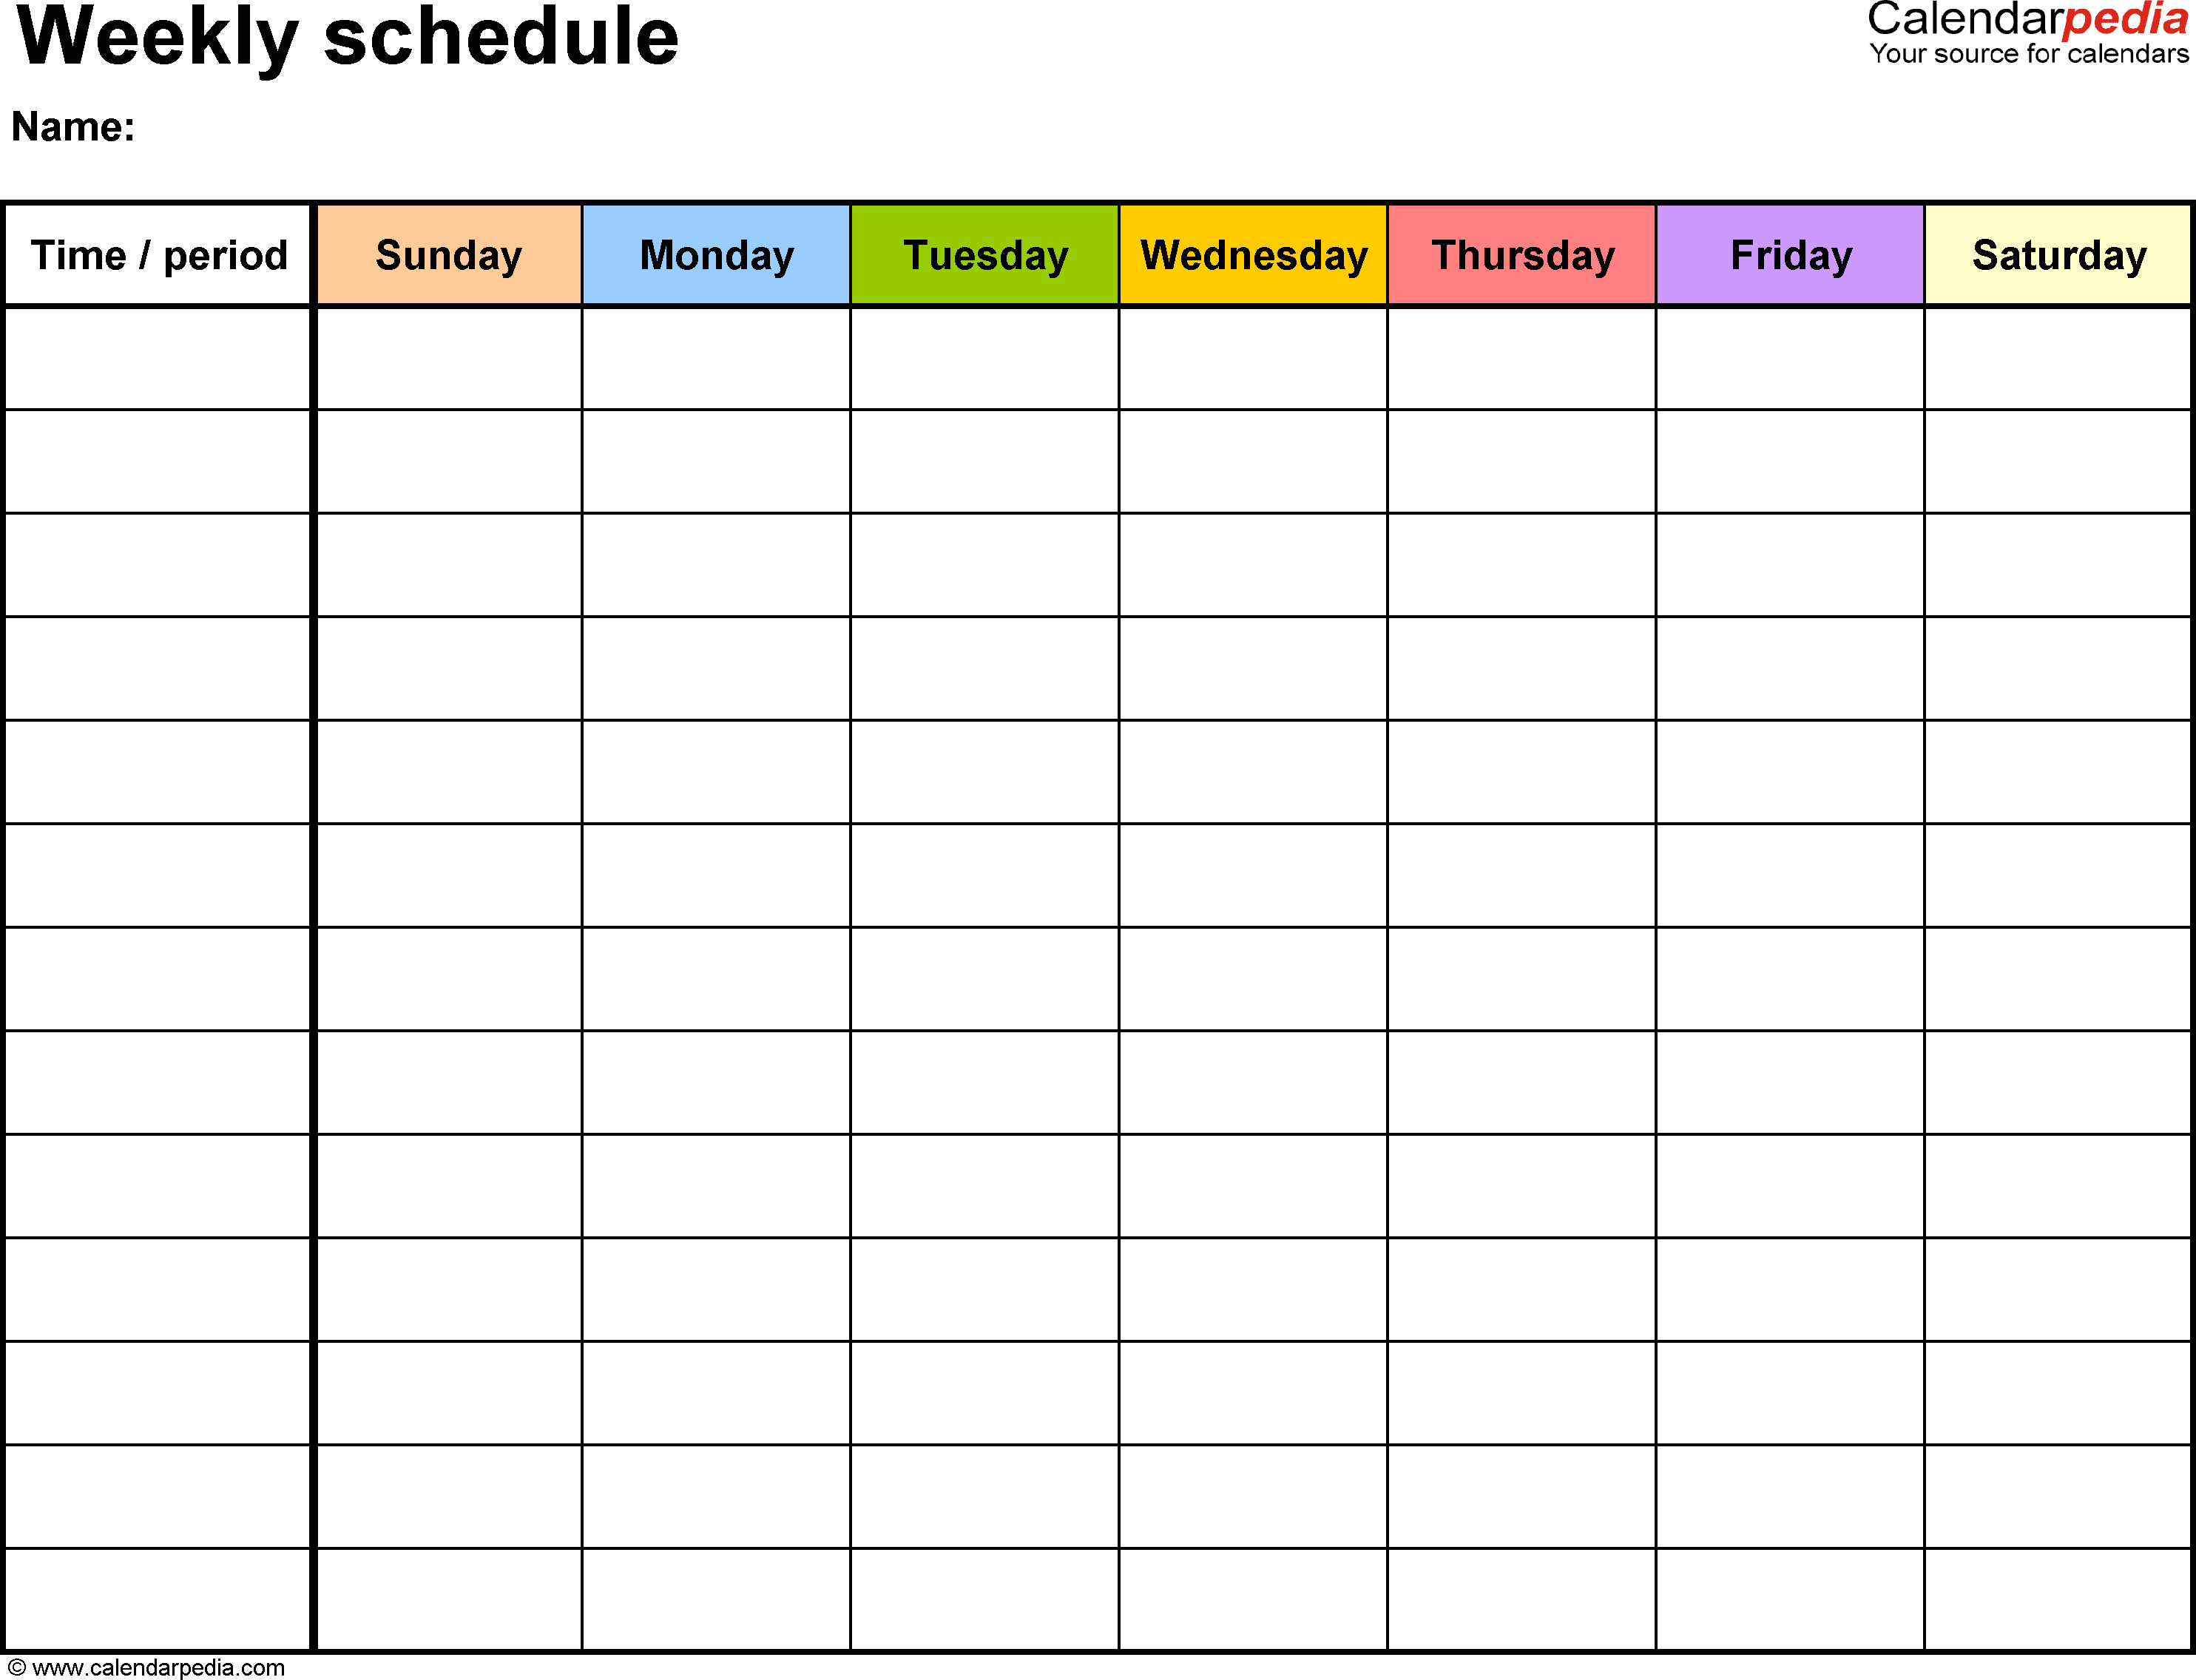 Free Weekly Schedule Templates For Word - 18 Templates within Templates Of Organizational Calendars For Kids